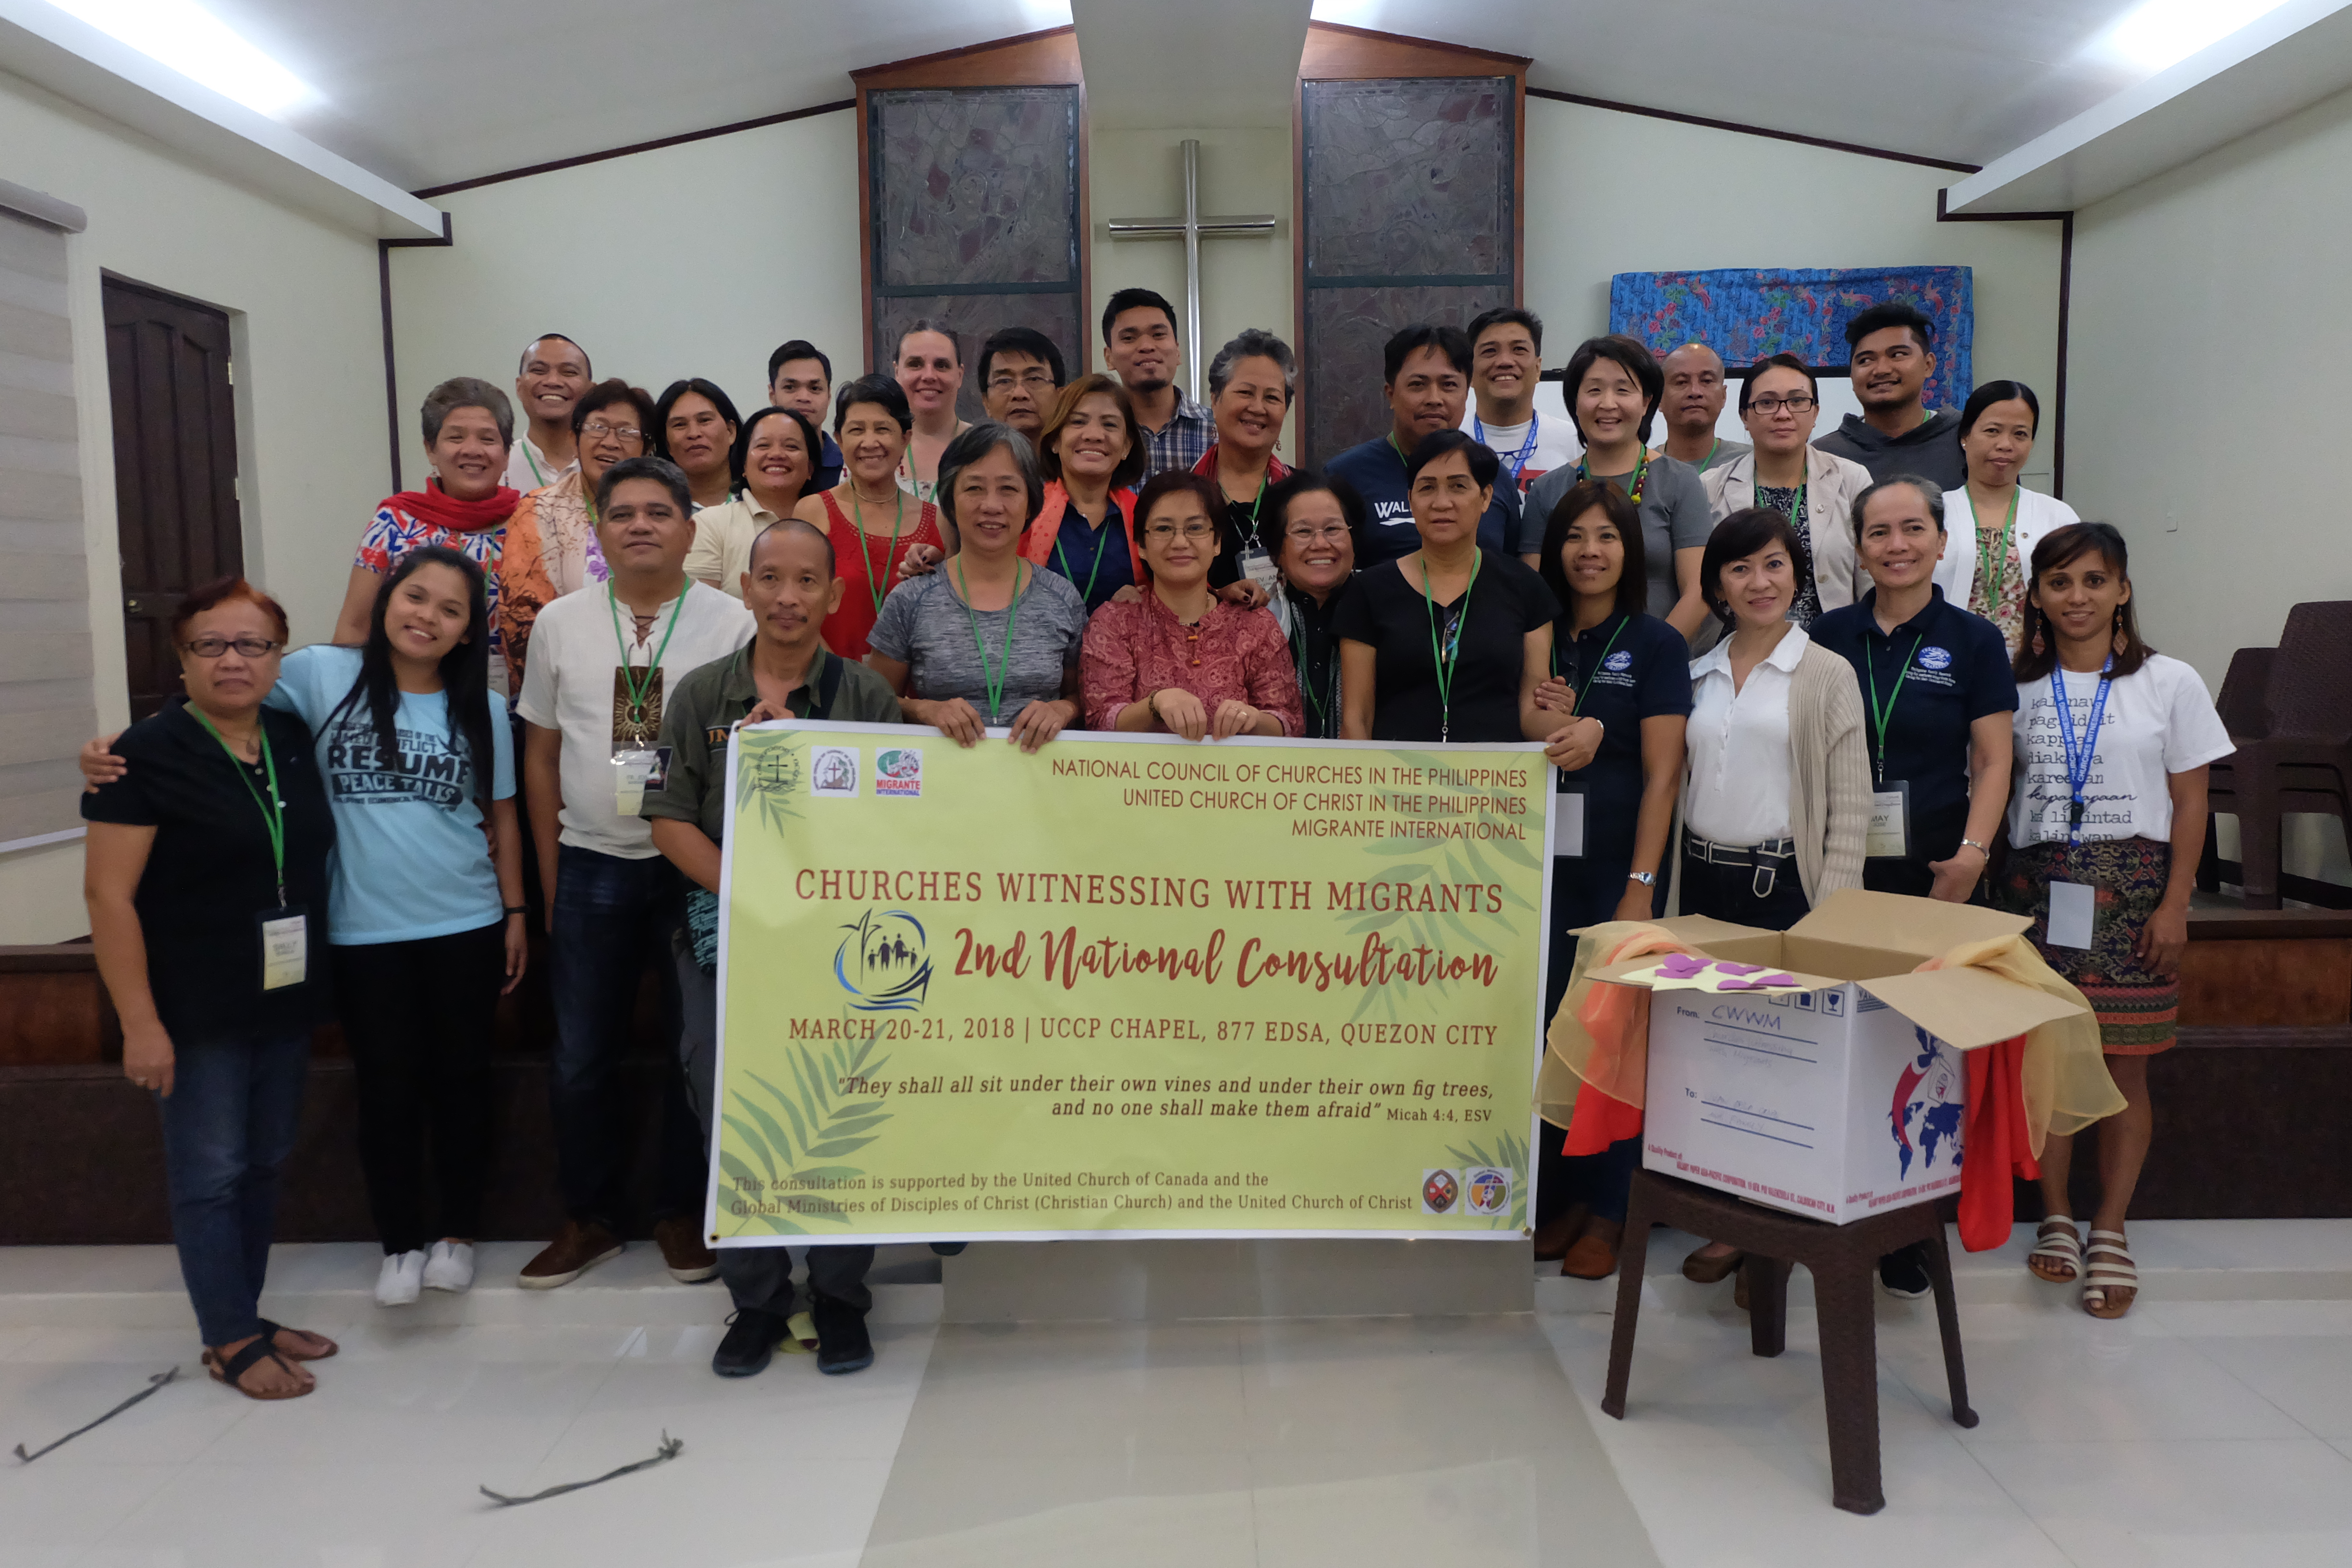 Participants from the CWWM national consultation in late March 2018. (photo credit:  National Council of Churches in the Philippines)